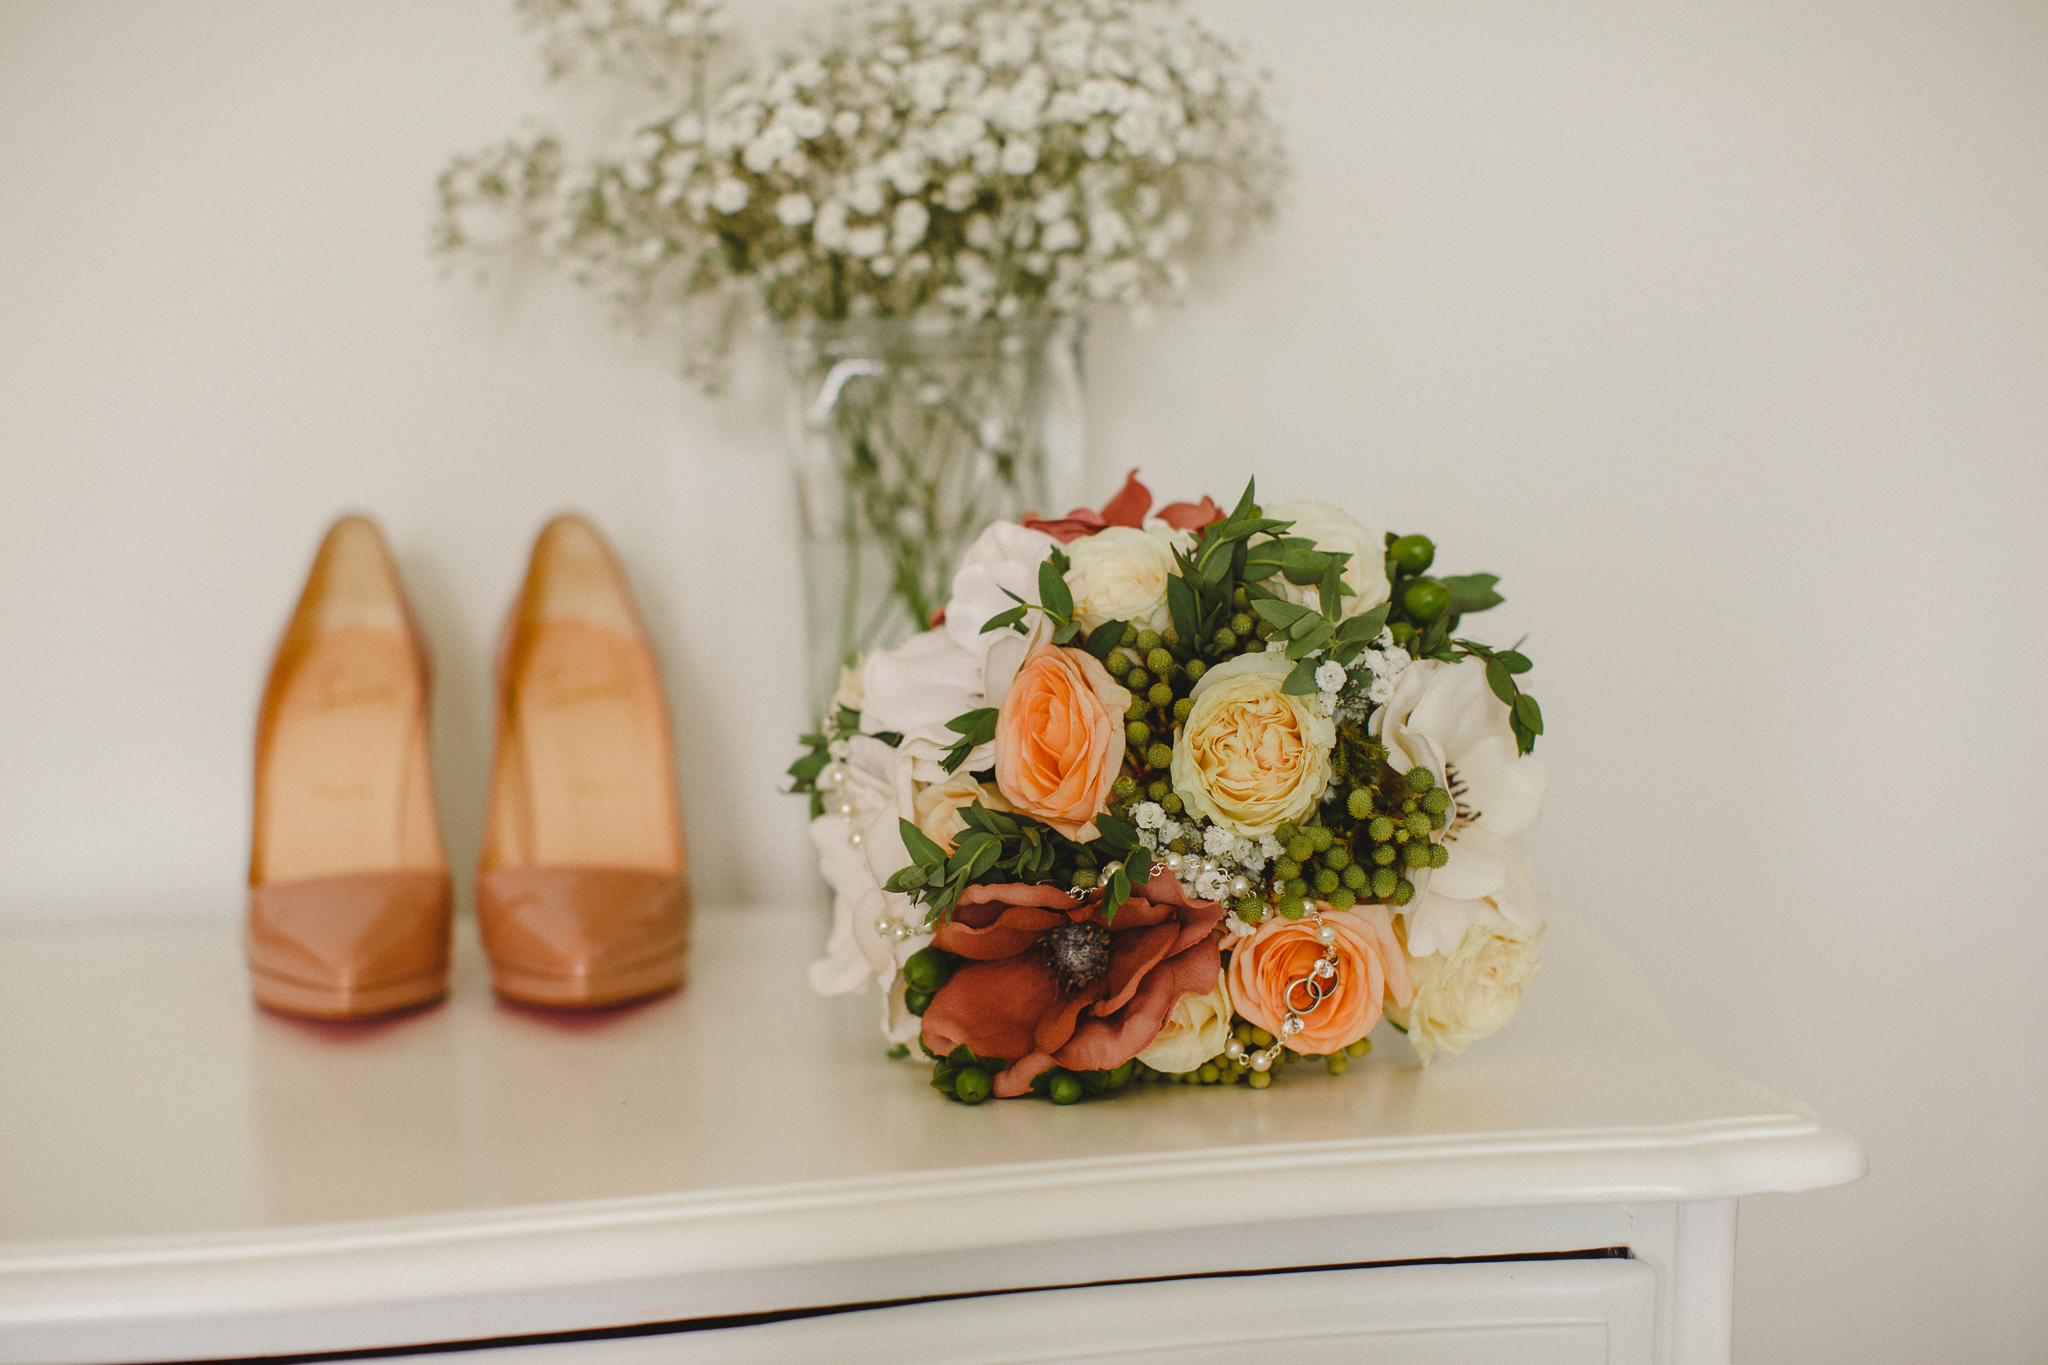 Bride's shoes and flowers.